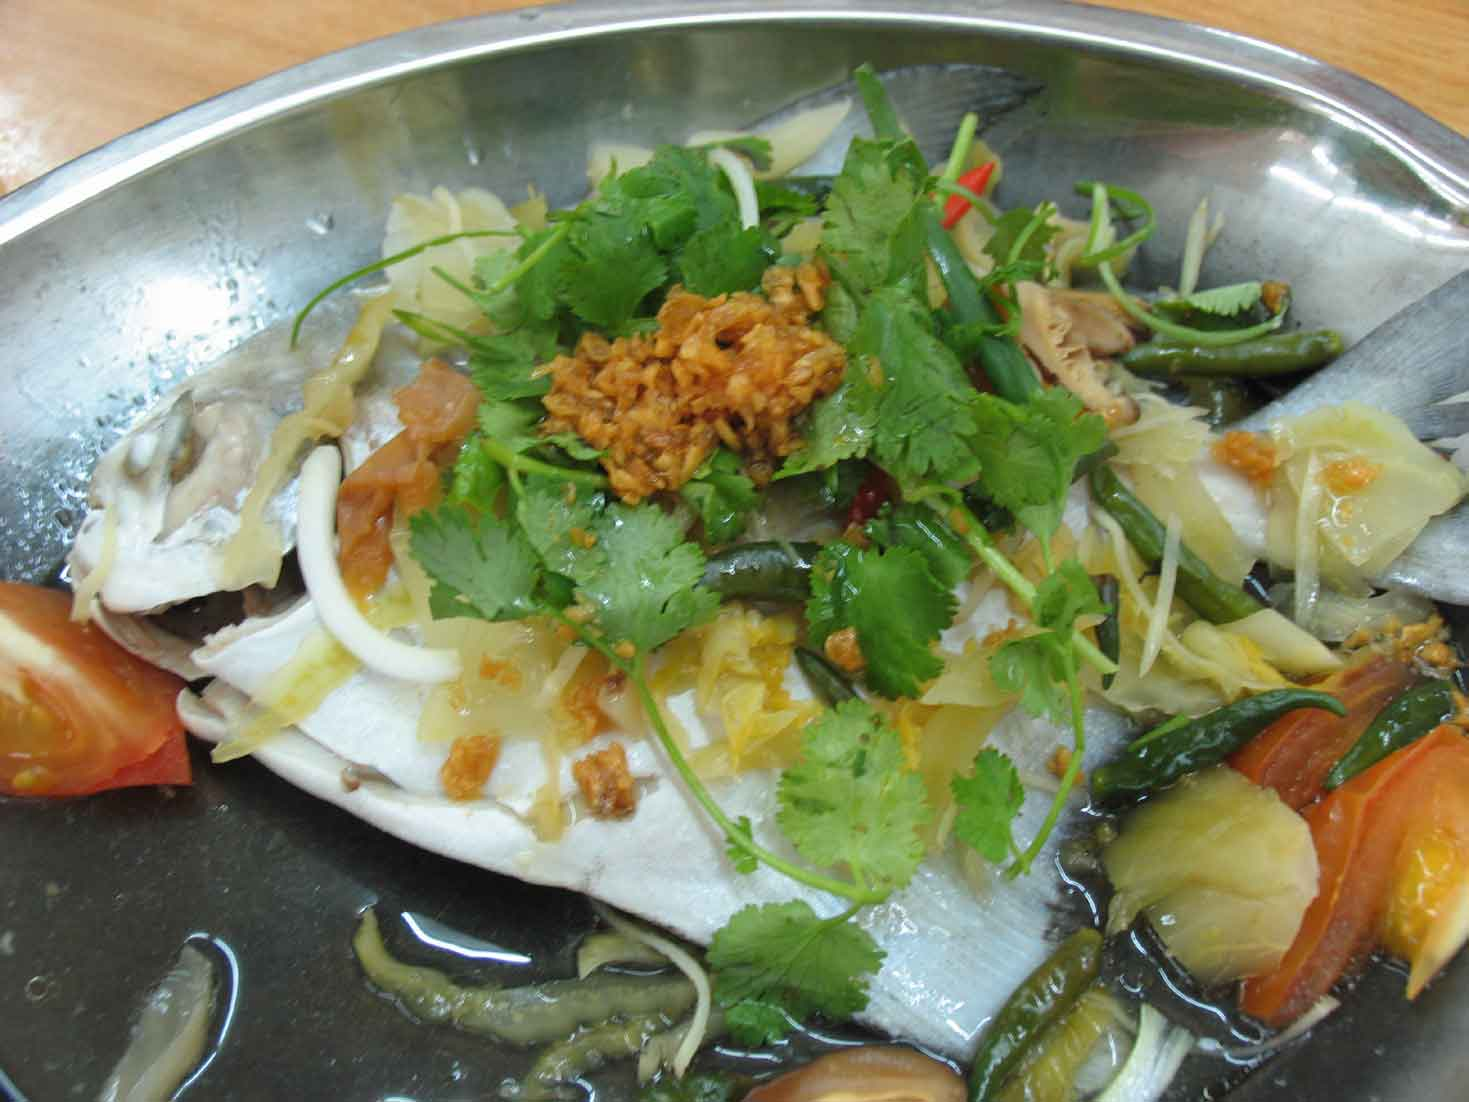 Terubong Seafood steam fish